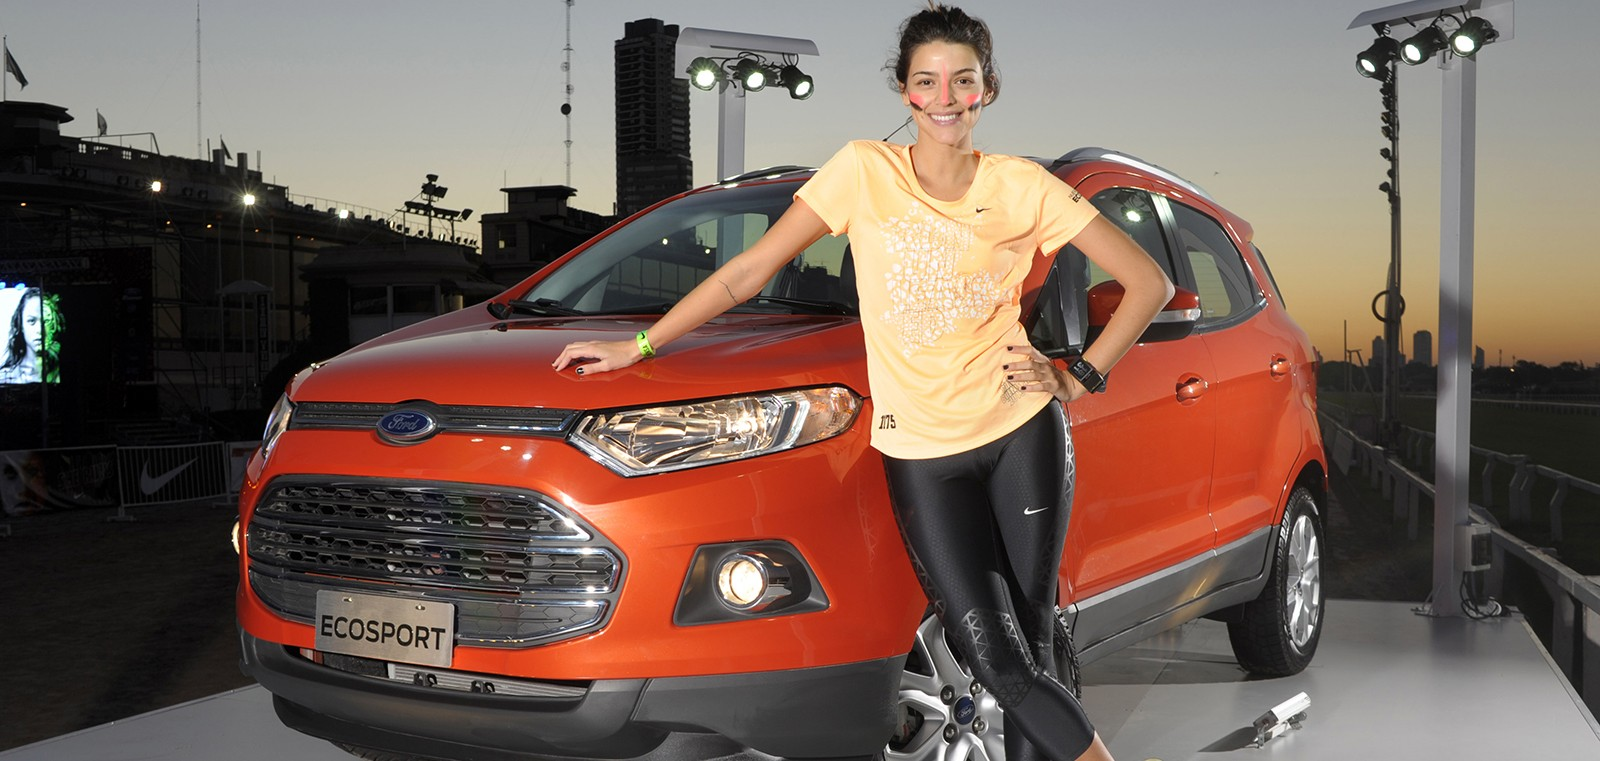 Ford Eco Sport Nike Corre